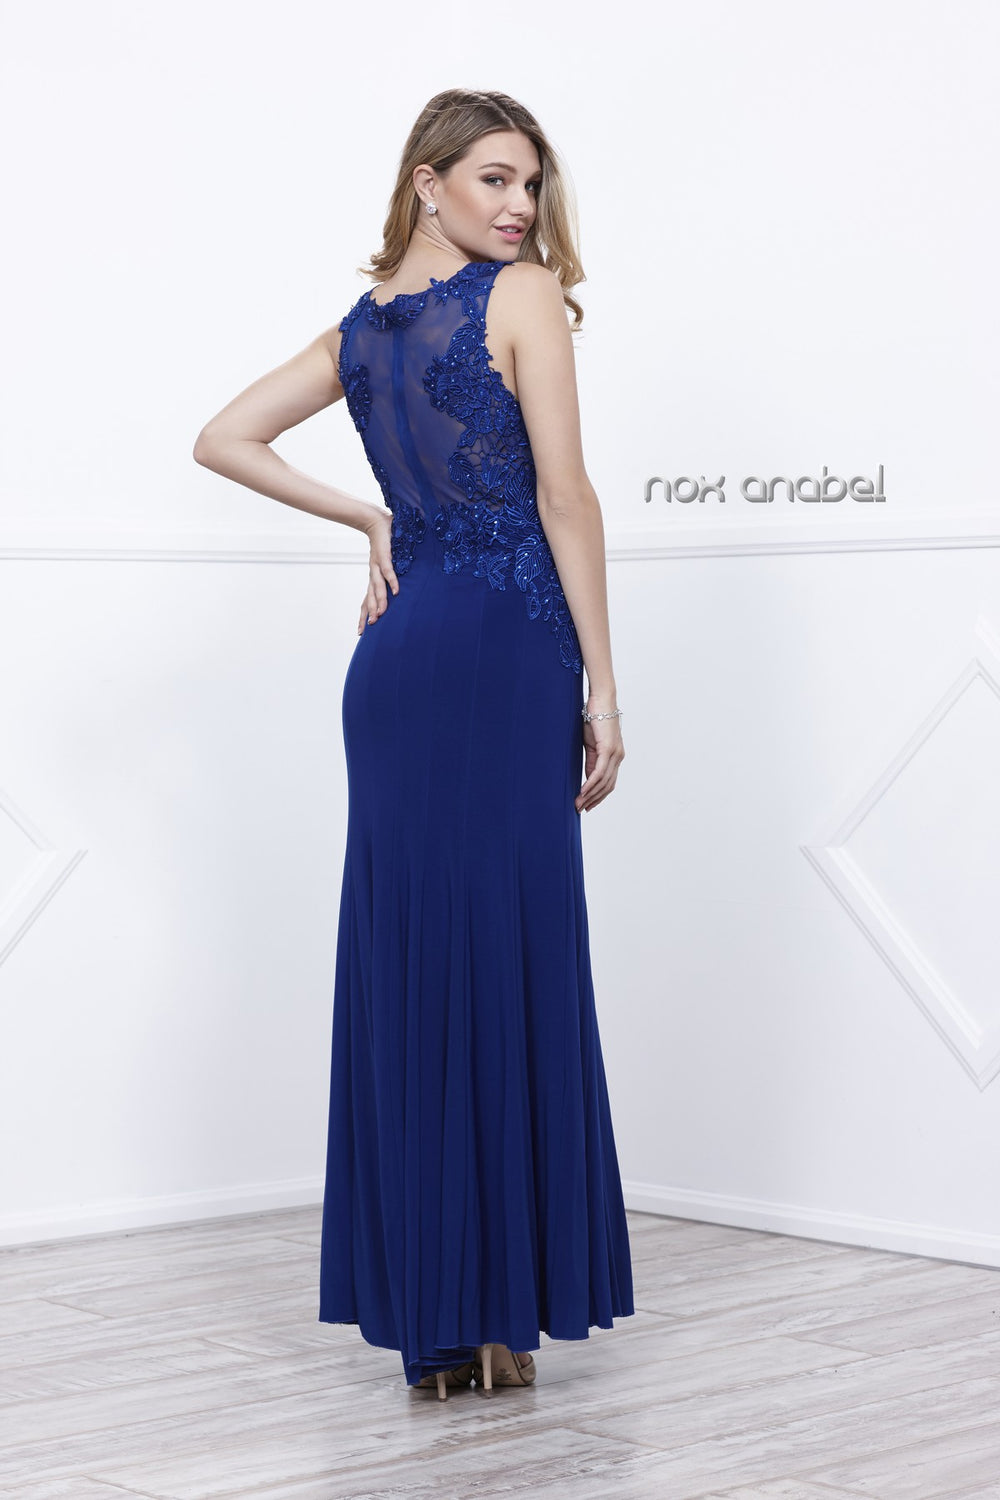 ELEGANT FITTED SIDE EMBROIDERED V-NECK SHEATH DRESS 8258 BY NARIANNA